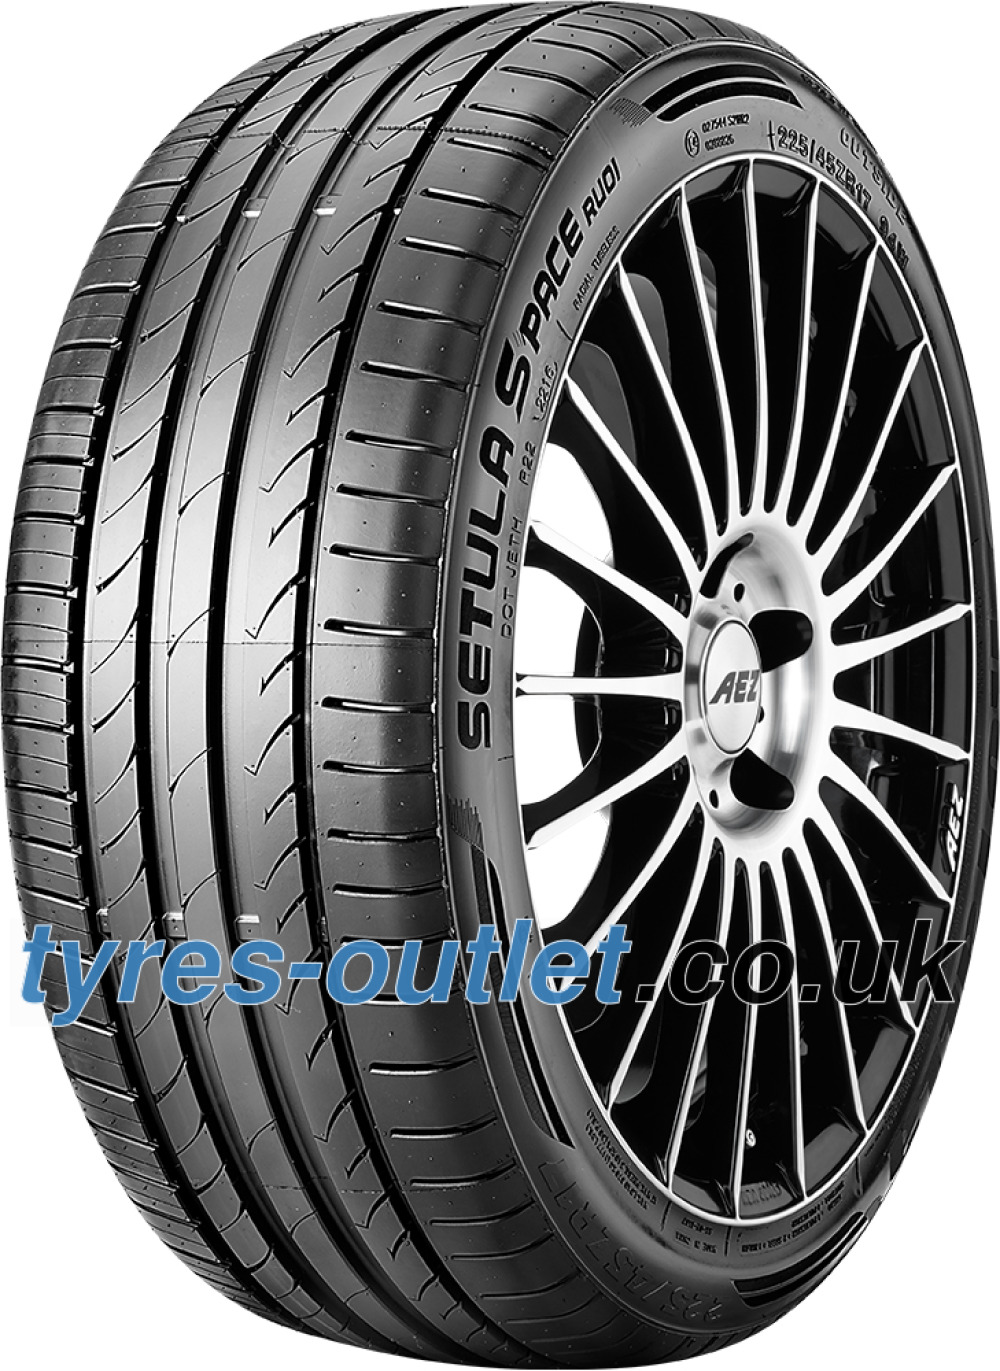 Rotalla Setula S-Pace RUO1 ( 245/45 R18 100Y XL with rim protection (MFS) )